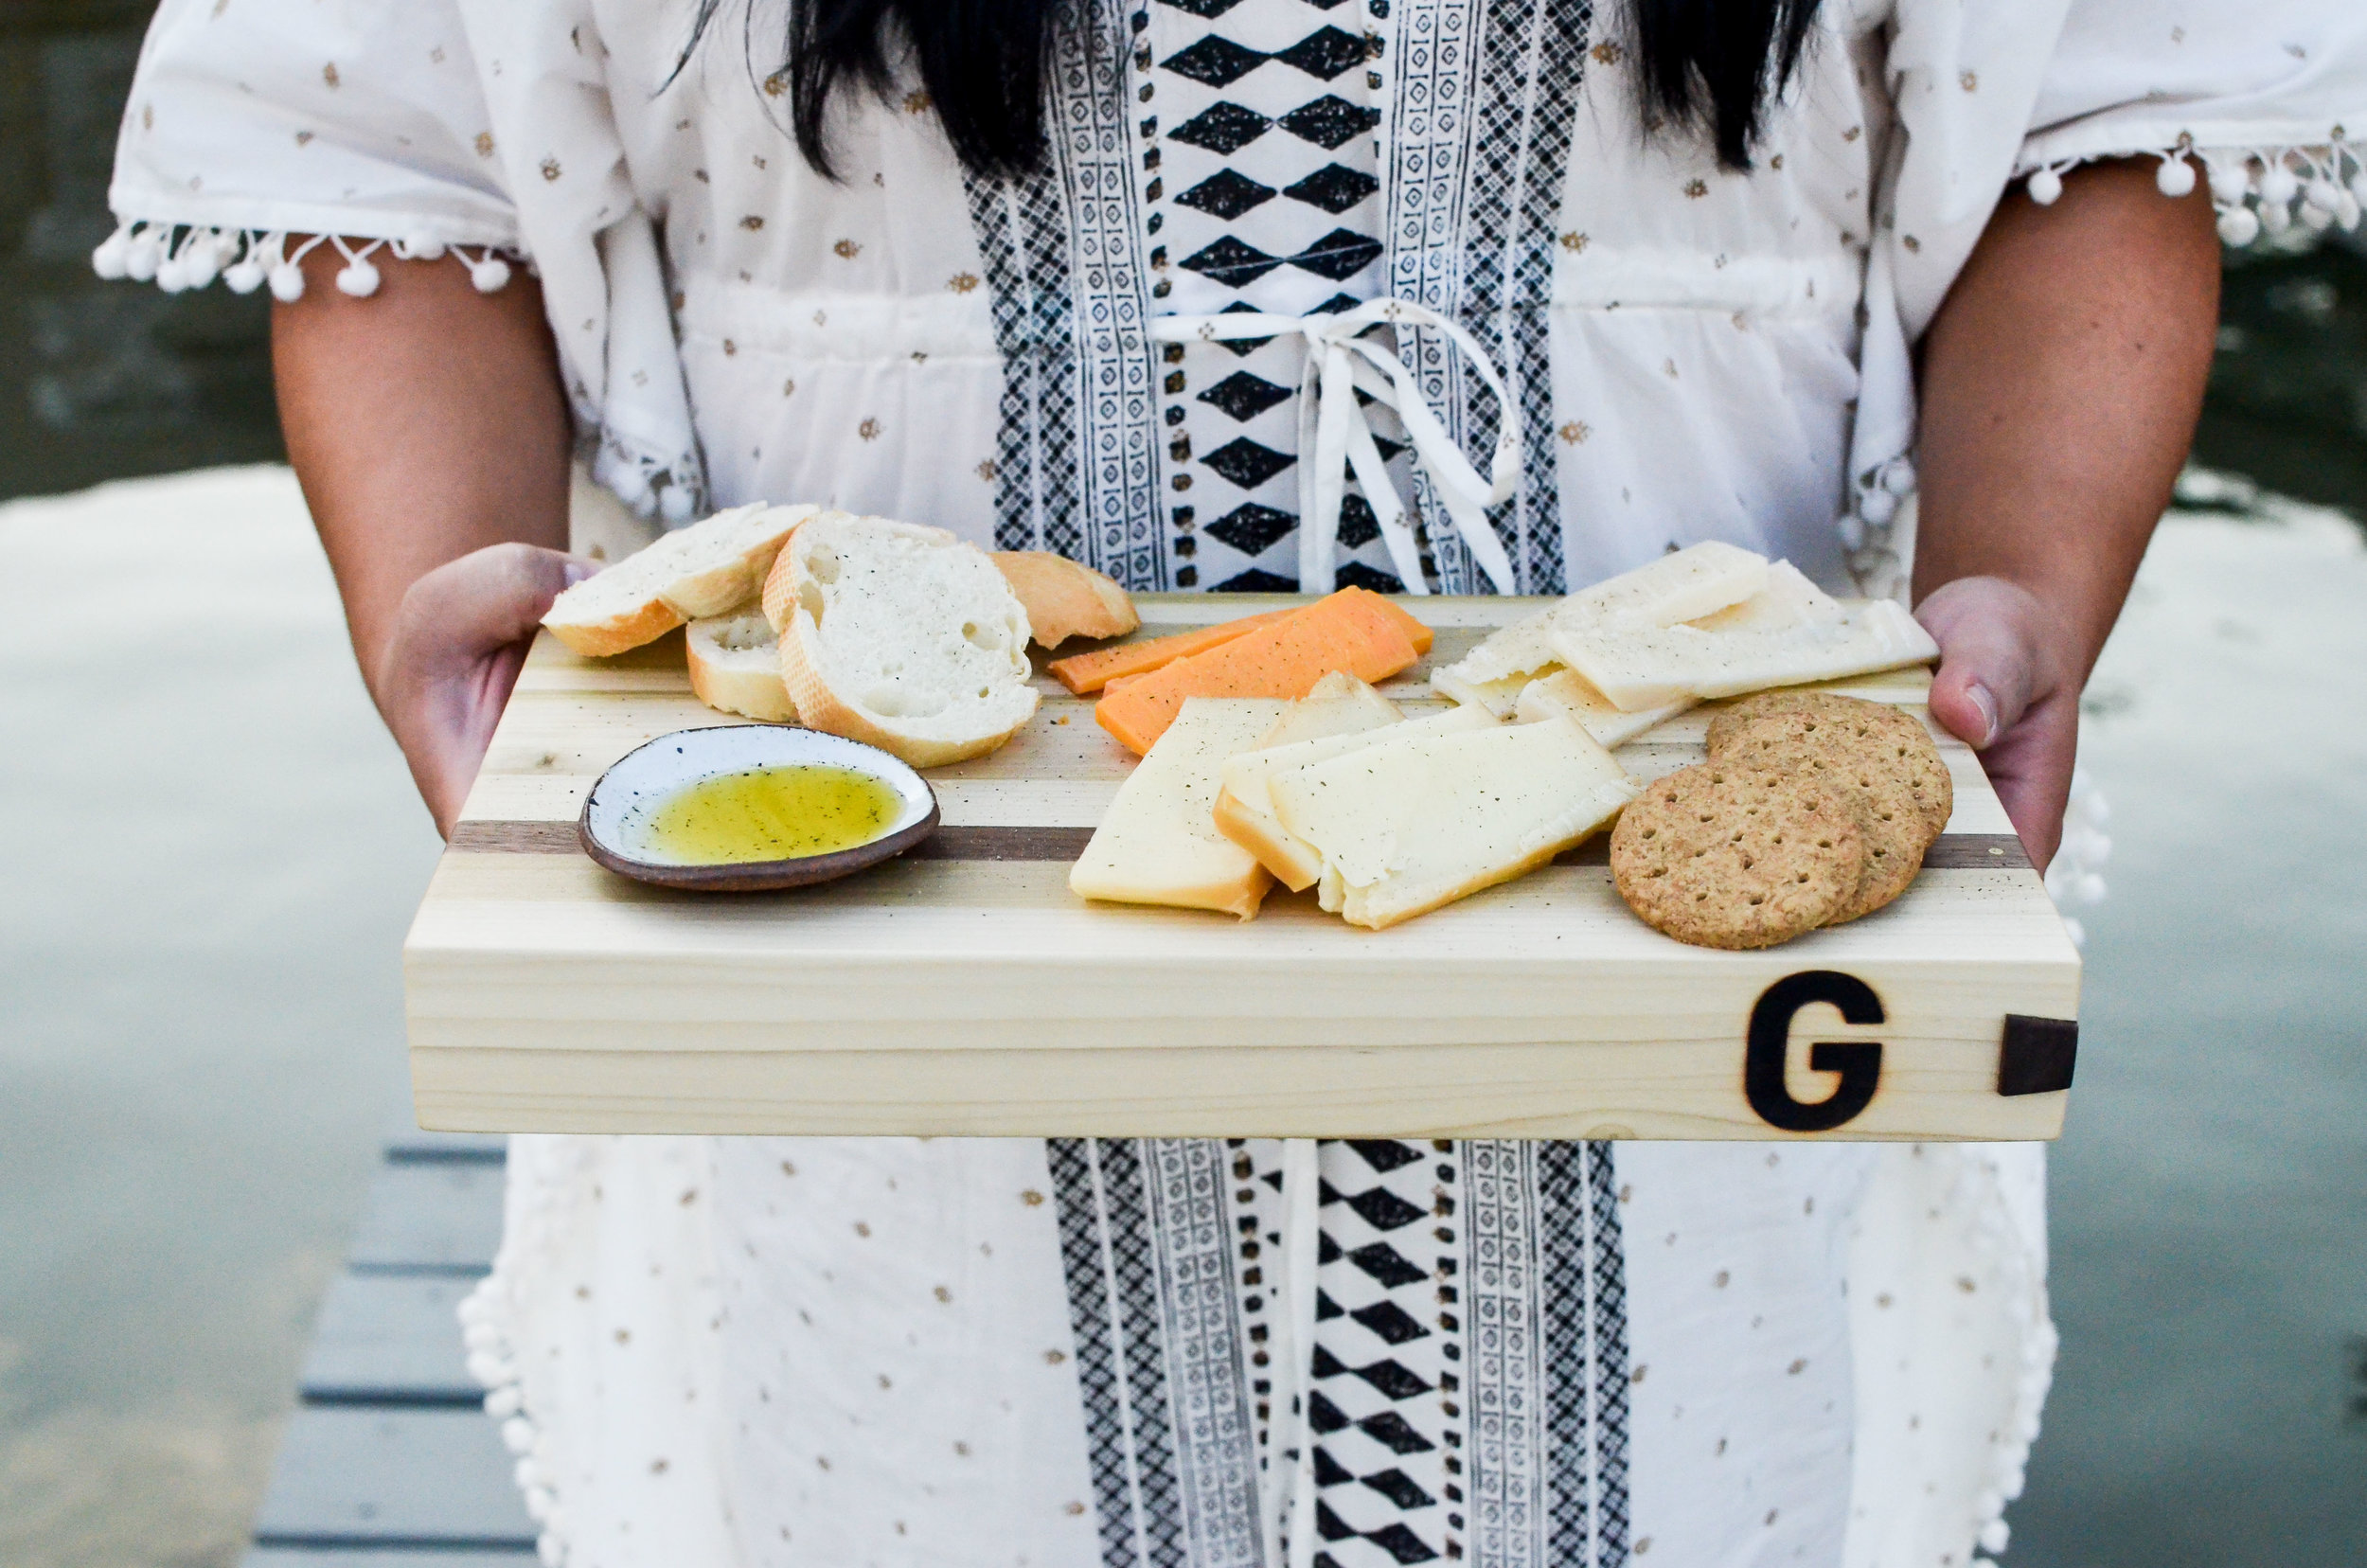 Wendling_Boyd_Gather_Table_Co_Charcuterie_Plate-5.jpg